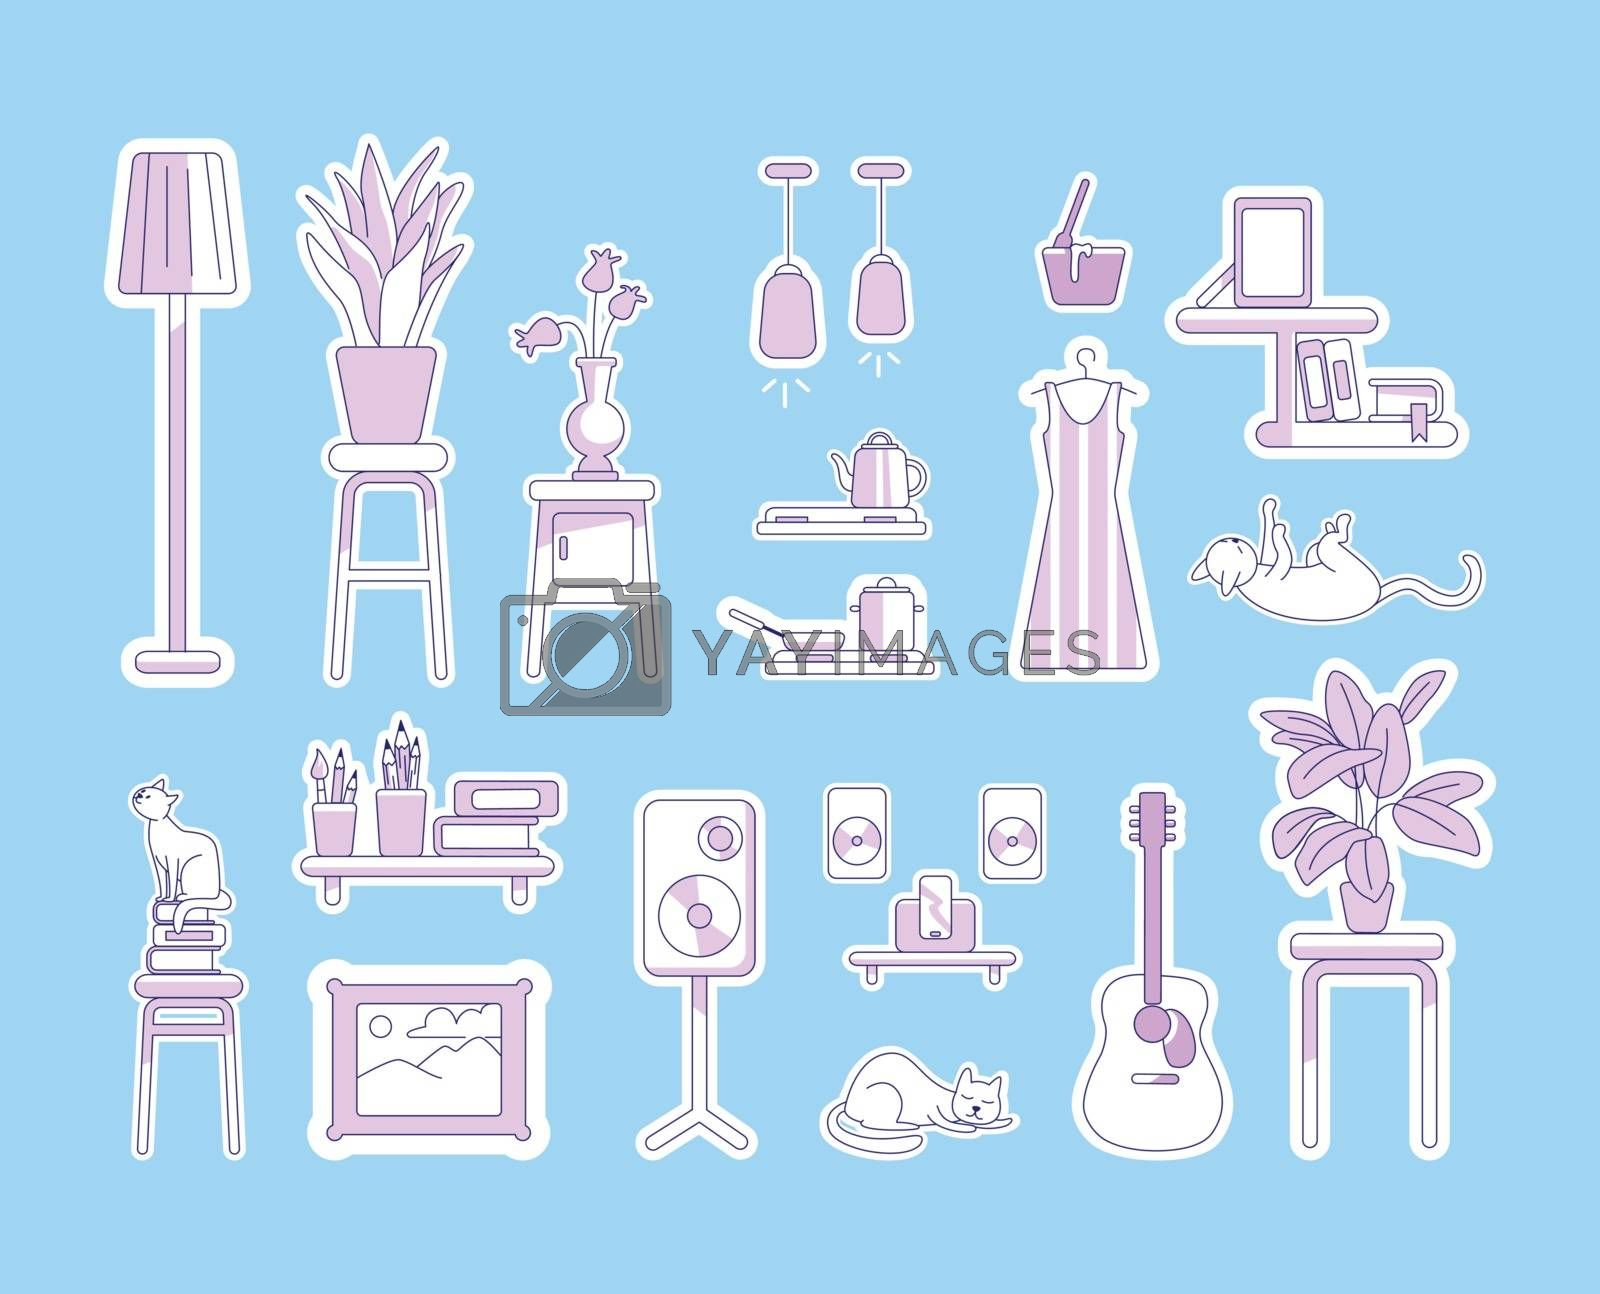 Lifestyle purple linear objects set. Guitar and music system. Shelves and house plants. Hobbies and craft thin line symbols pack. Household isolated outline illustrations on blue background